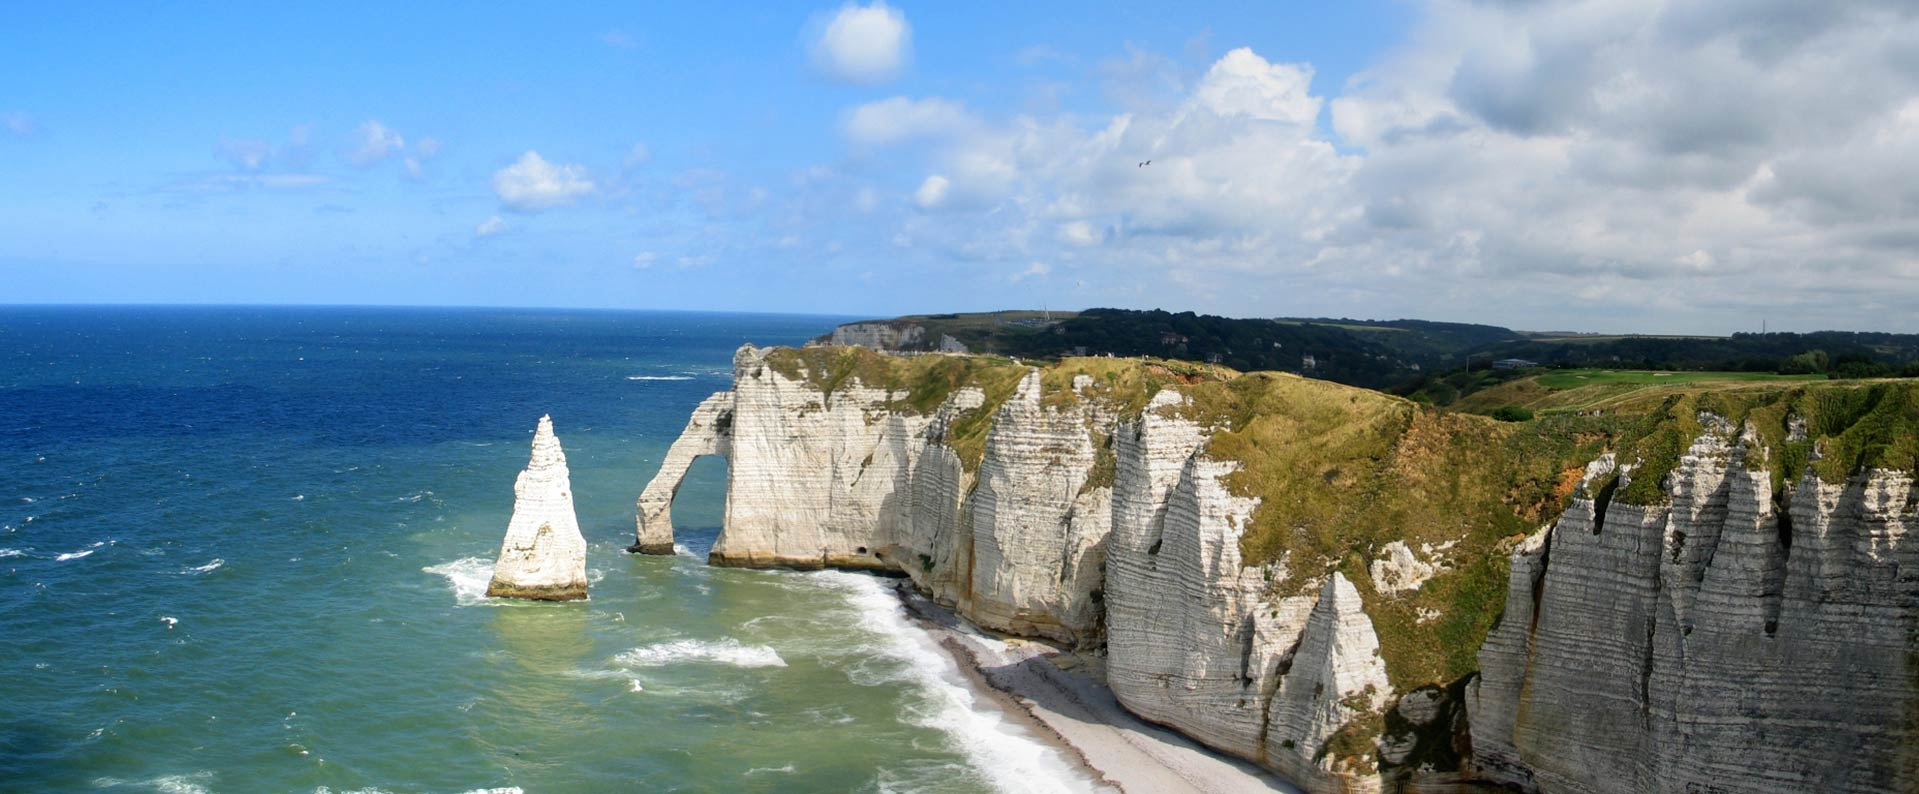 The cliffs of etretat